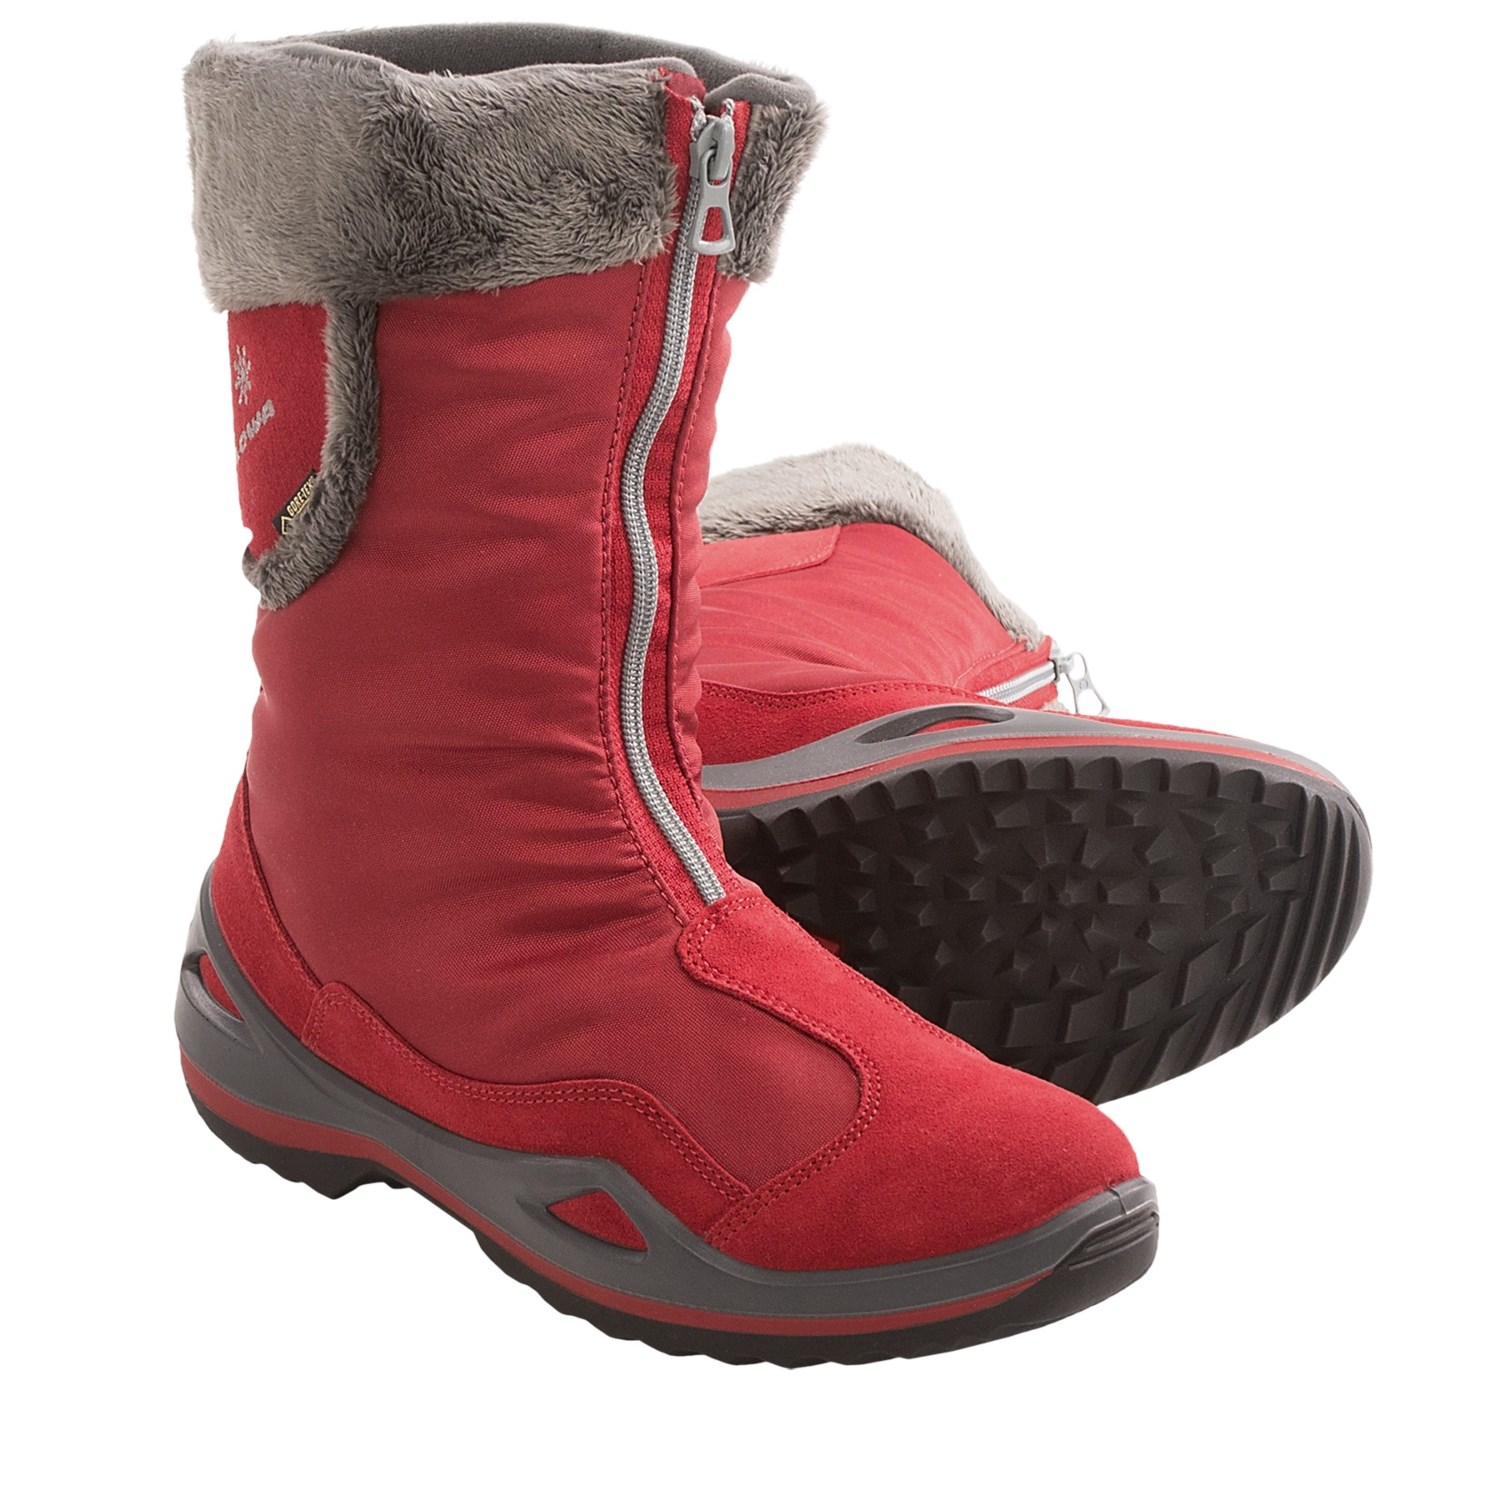 Cute Snow Boots For Women Women s winter & snow boots